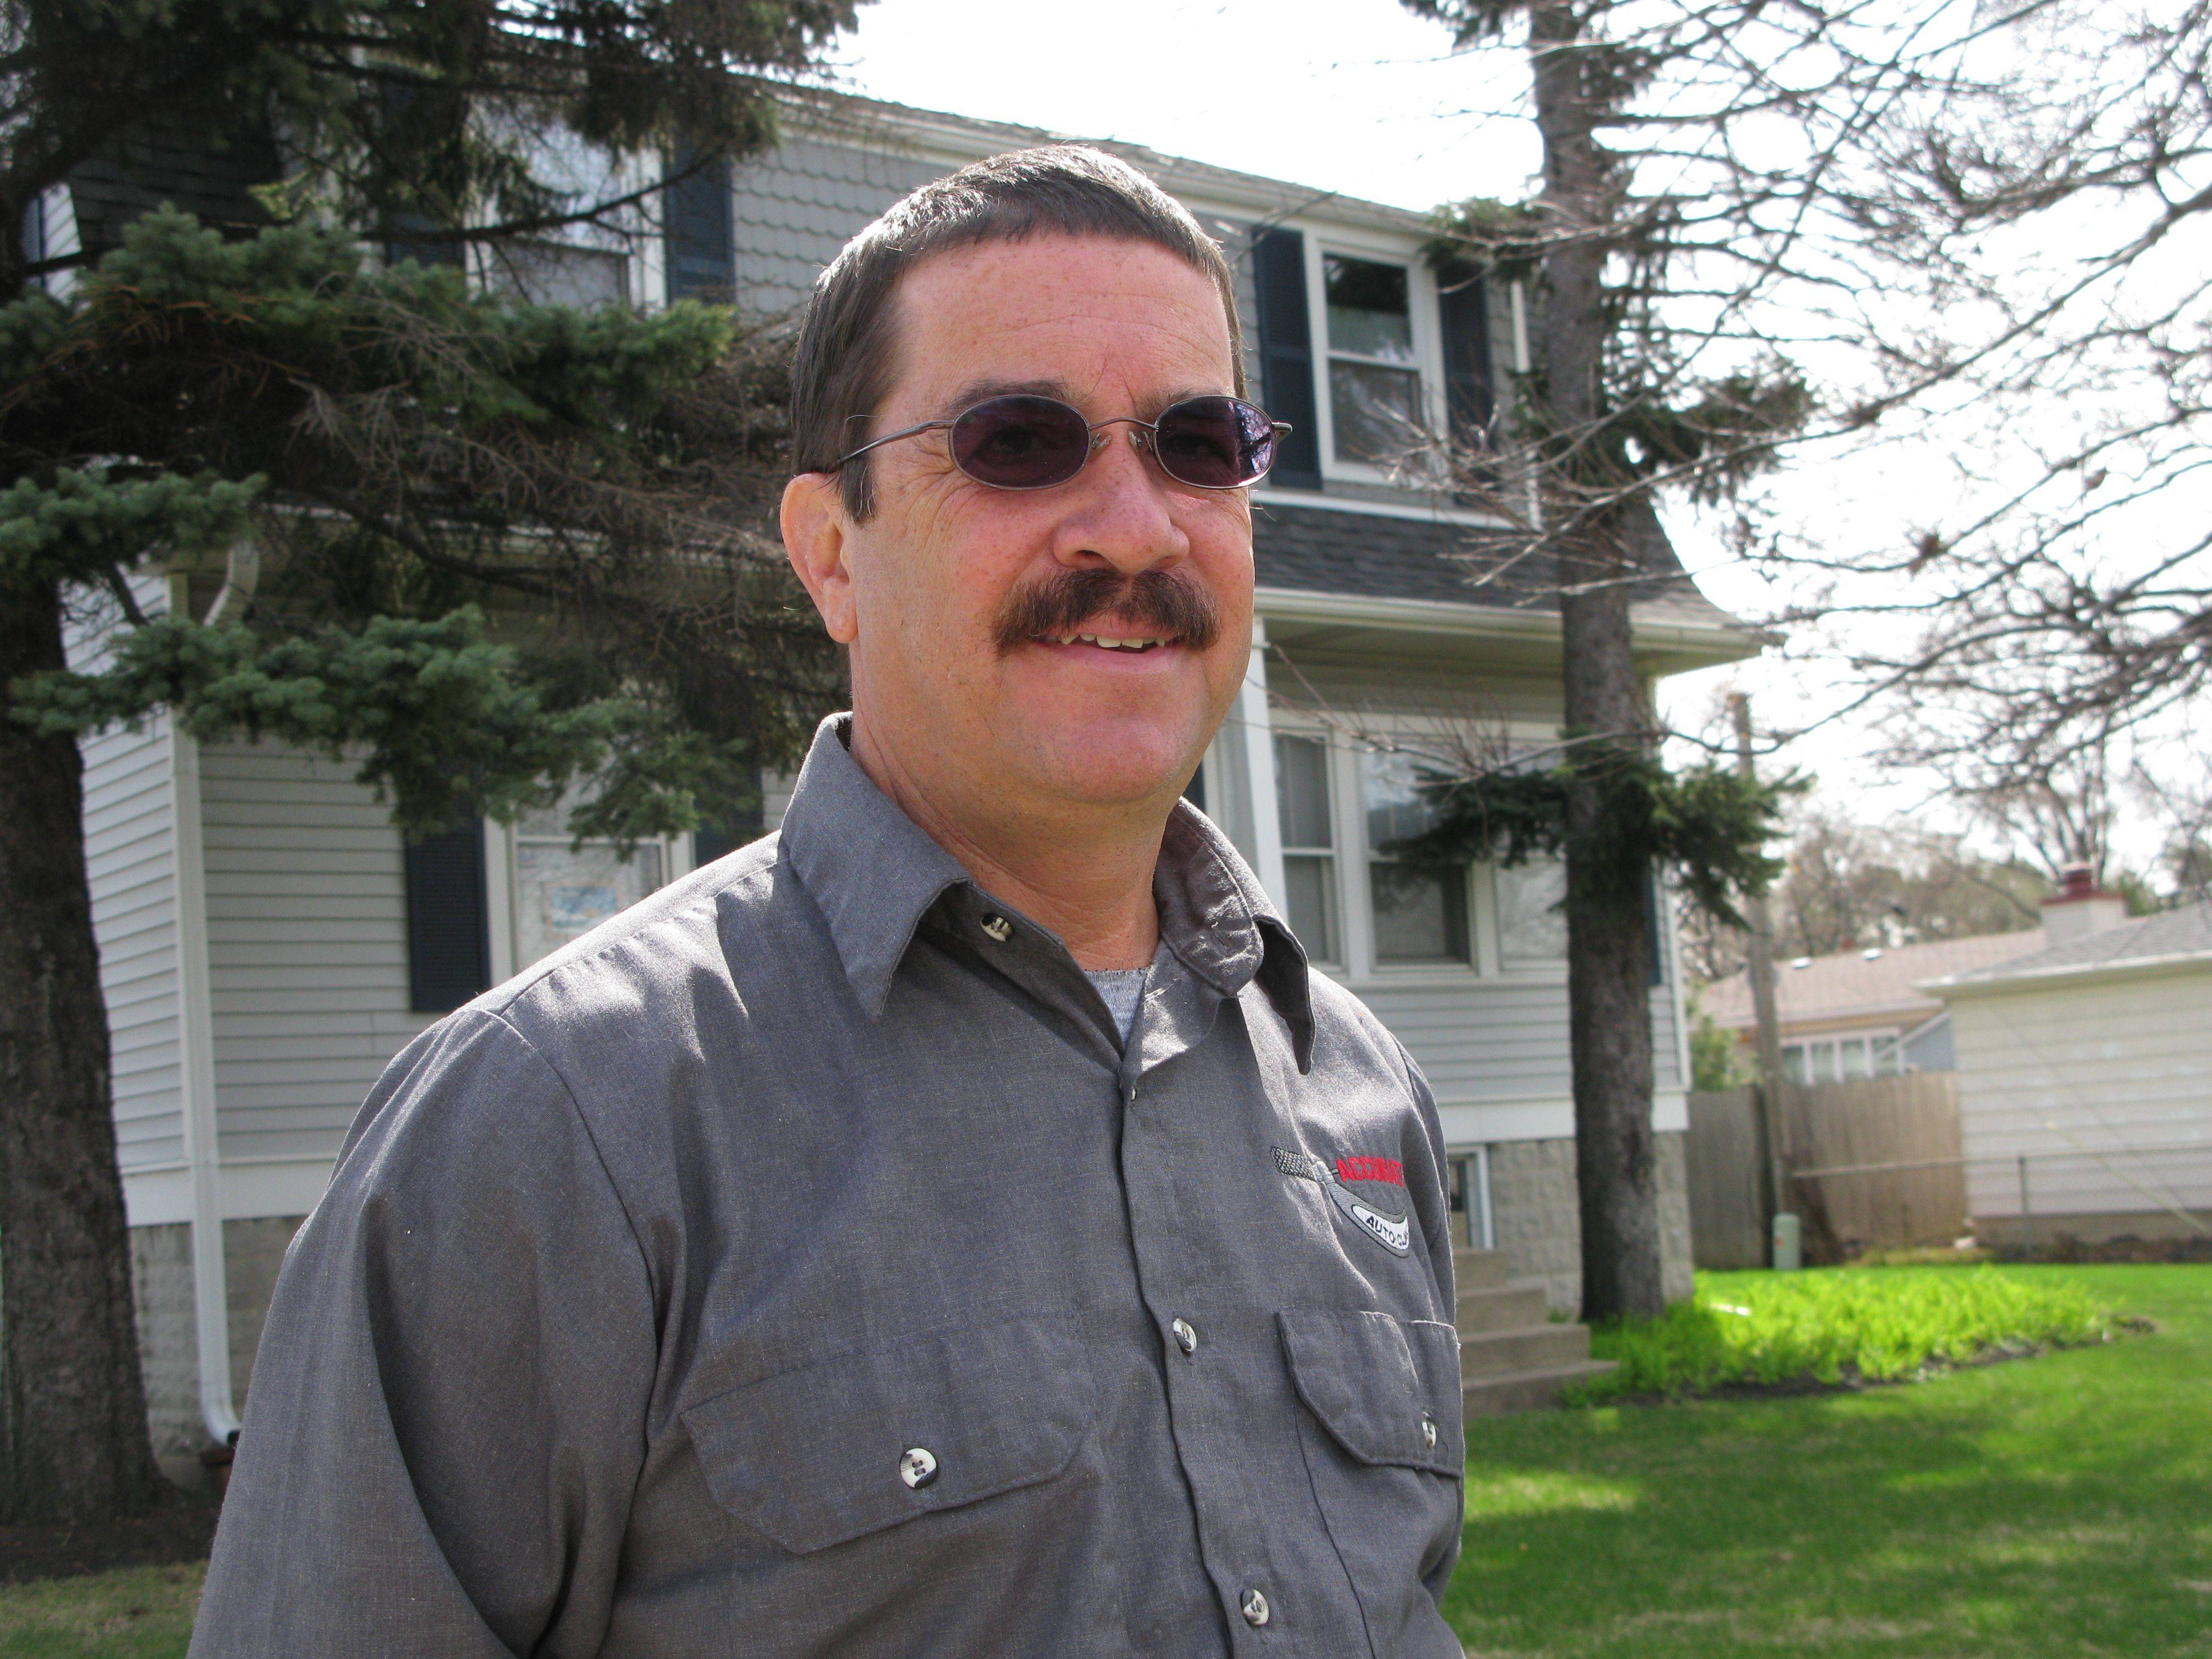 Des Plaines' new 8th Ward alderman-elect Mike Charewicz, standing in front of his home, says his top priorities are flooding, maximizing casino revenues and bringing in new businesses.